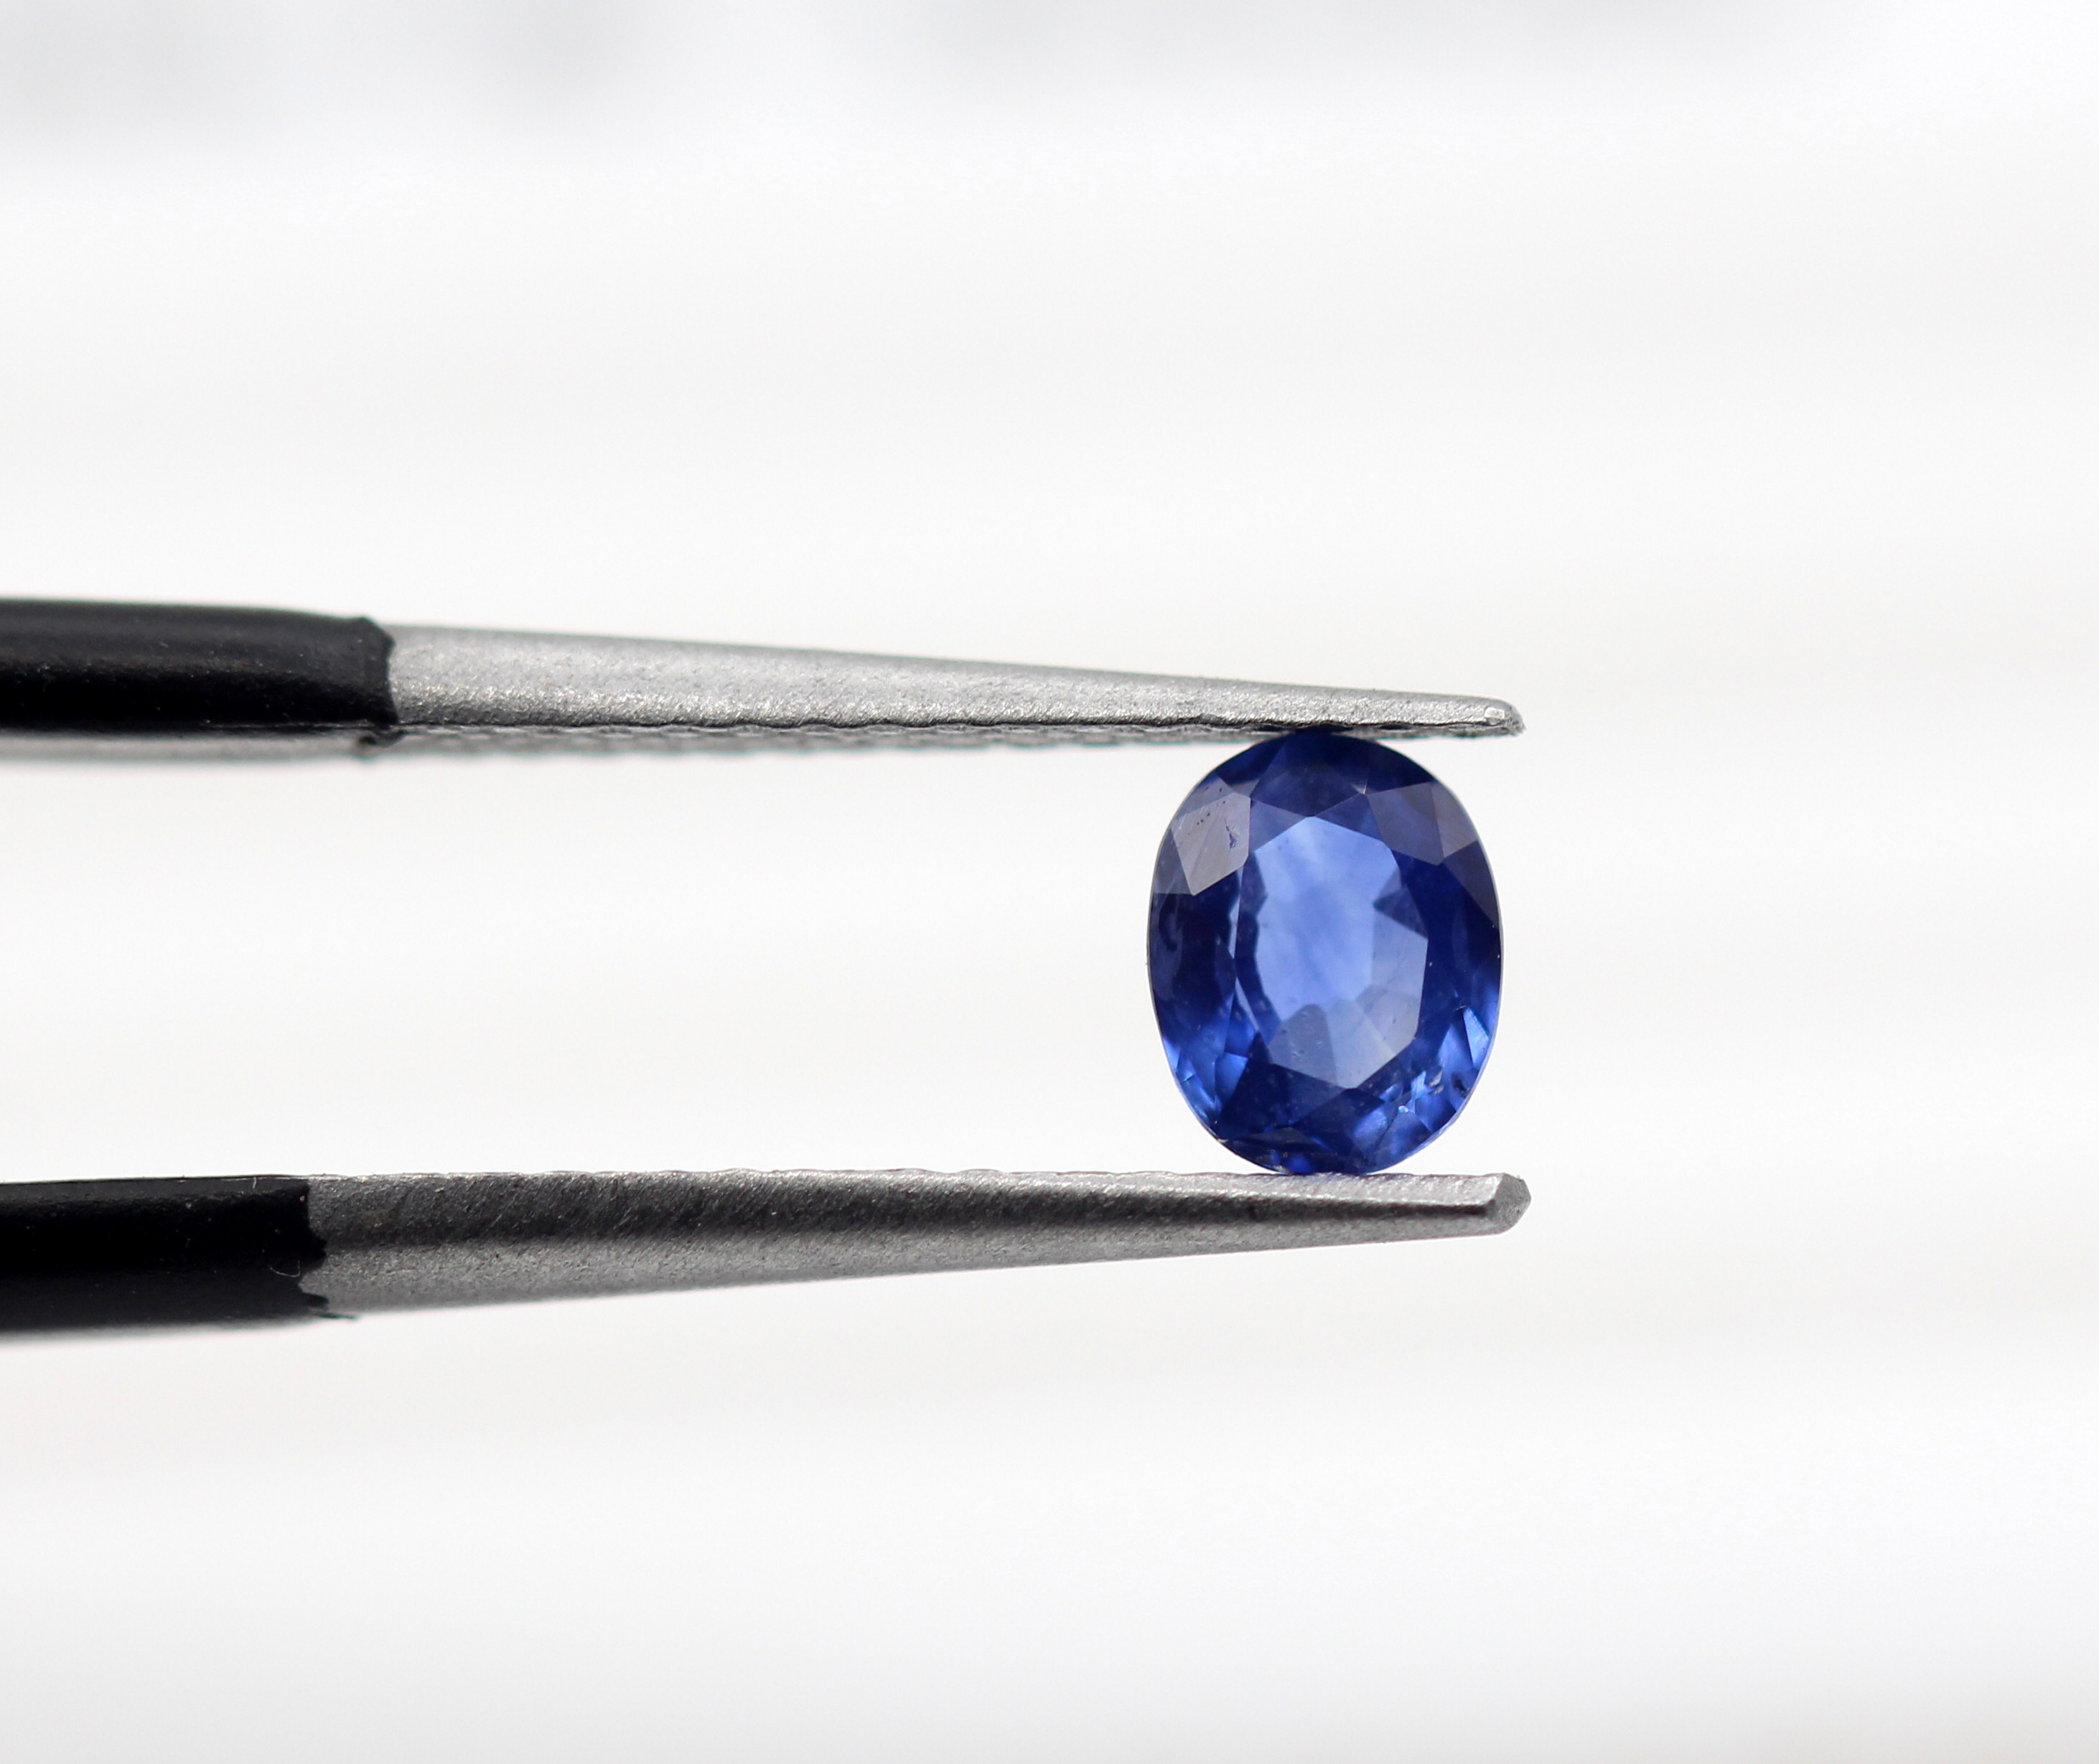 0.49 Ct Blue Sapphire Natural Gemstone Oval Shape Rich Blue Color Ceylon Certified